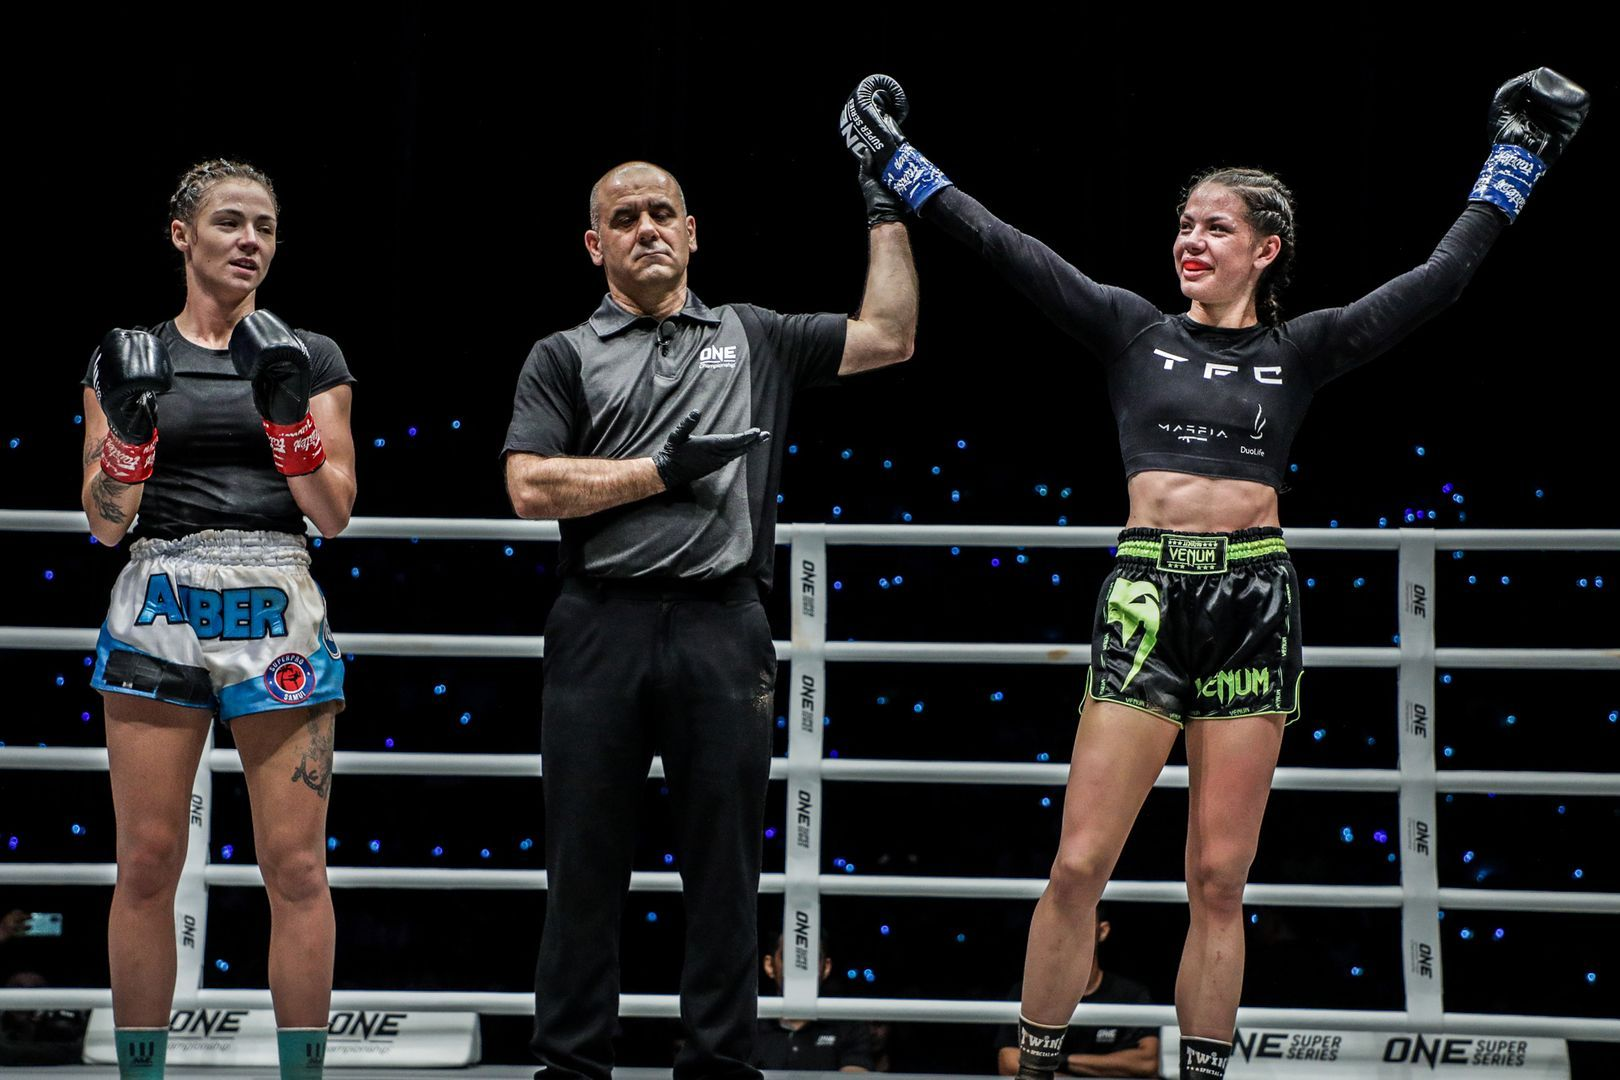 Victoria Lipianska takes the decision from Amber Kitchen with punches at ONE: IMMORTAL TRIUMPH